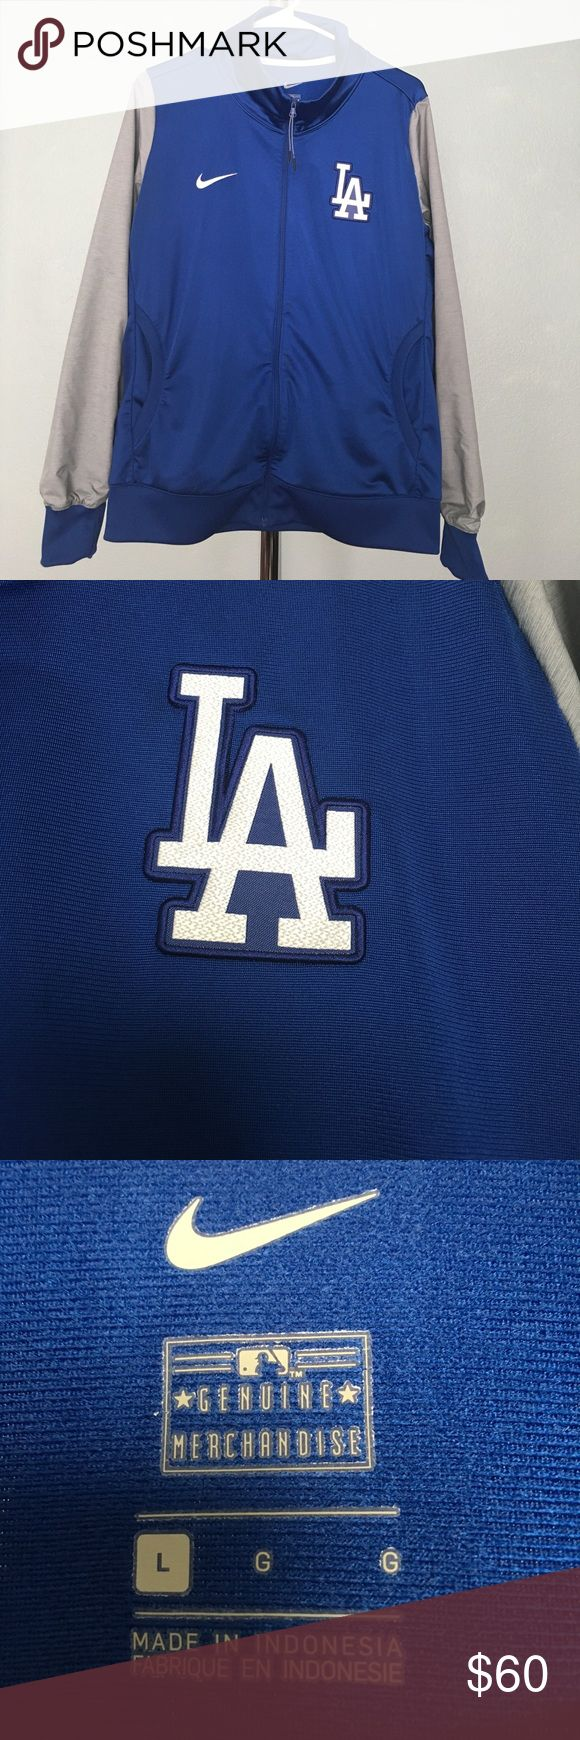 Nike Los Angeles Dodgers Blue Gray Track Jacket This Nike track jacket is Dodger blue and gray. Size is large women's, this is not a unisex jacket. It has the LA logo embroidered on the left breast and the Nike logo on the right. Features 2 pockets on the front plus 2 inside. Purchased at Dodger stadium and worn only a few times. Comes from a smoke and pet free home. Nike MLB Jackets & Coats Utility Jackets